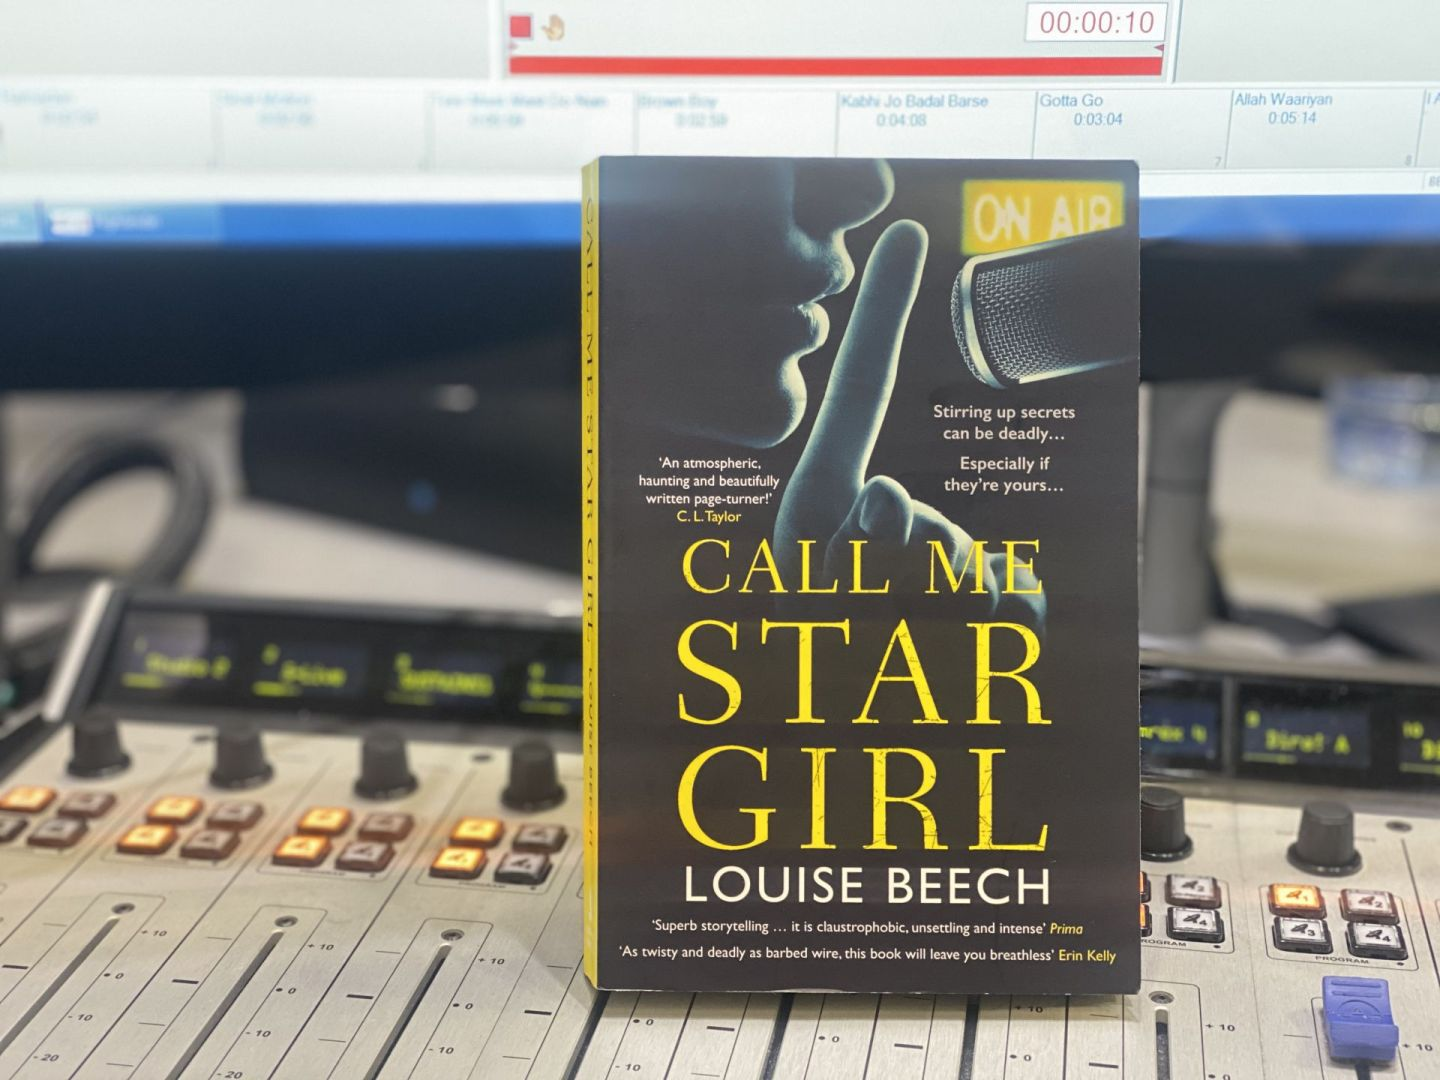 Call me star girl by Louise Beech at Orion publishing